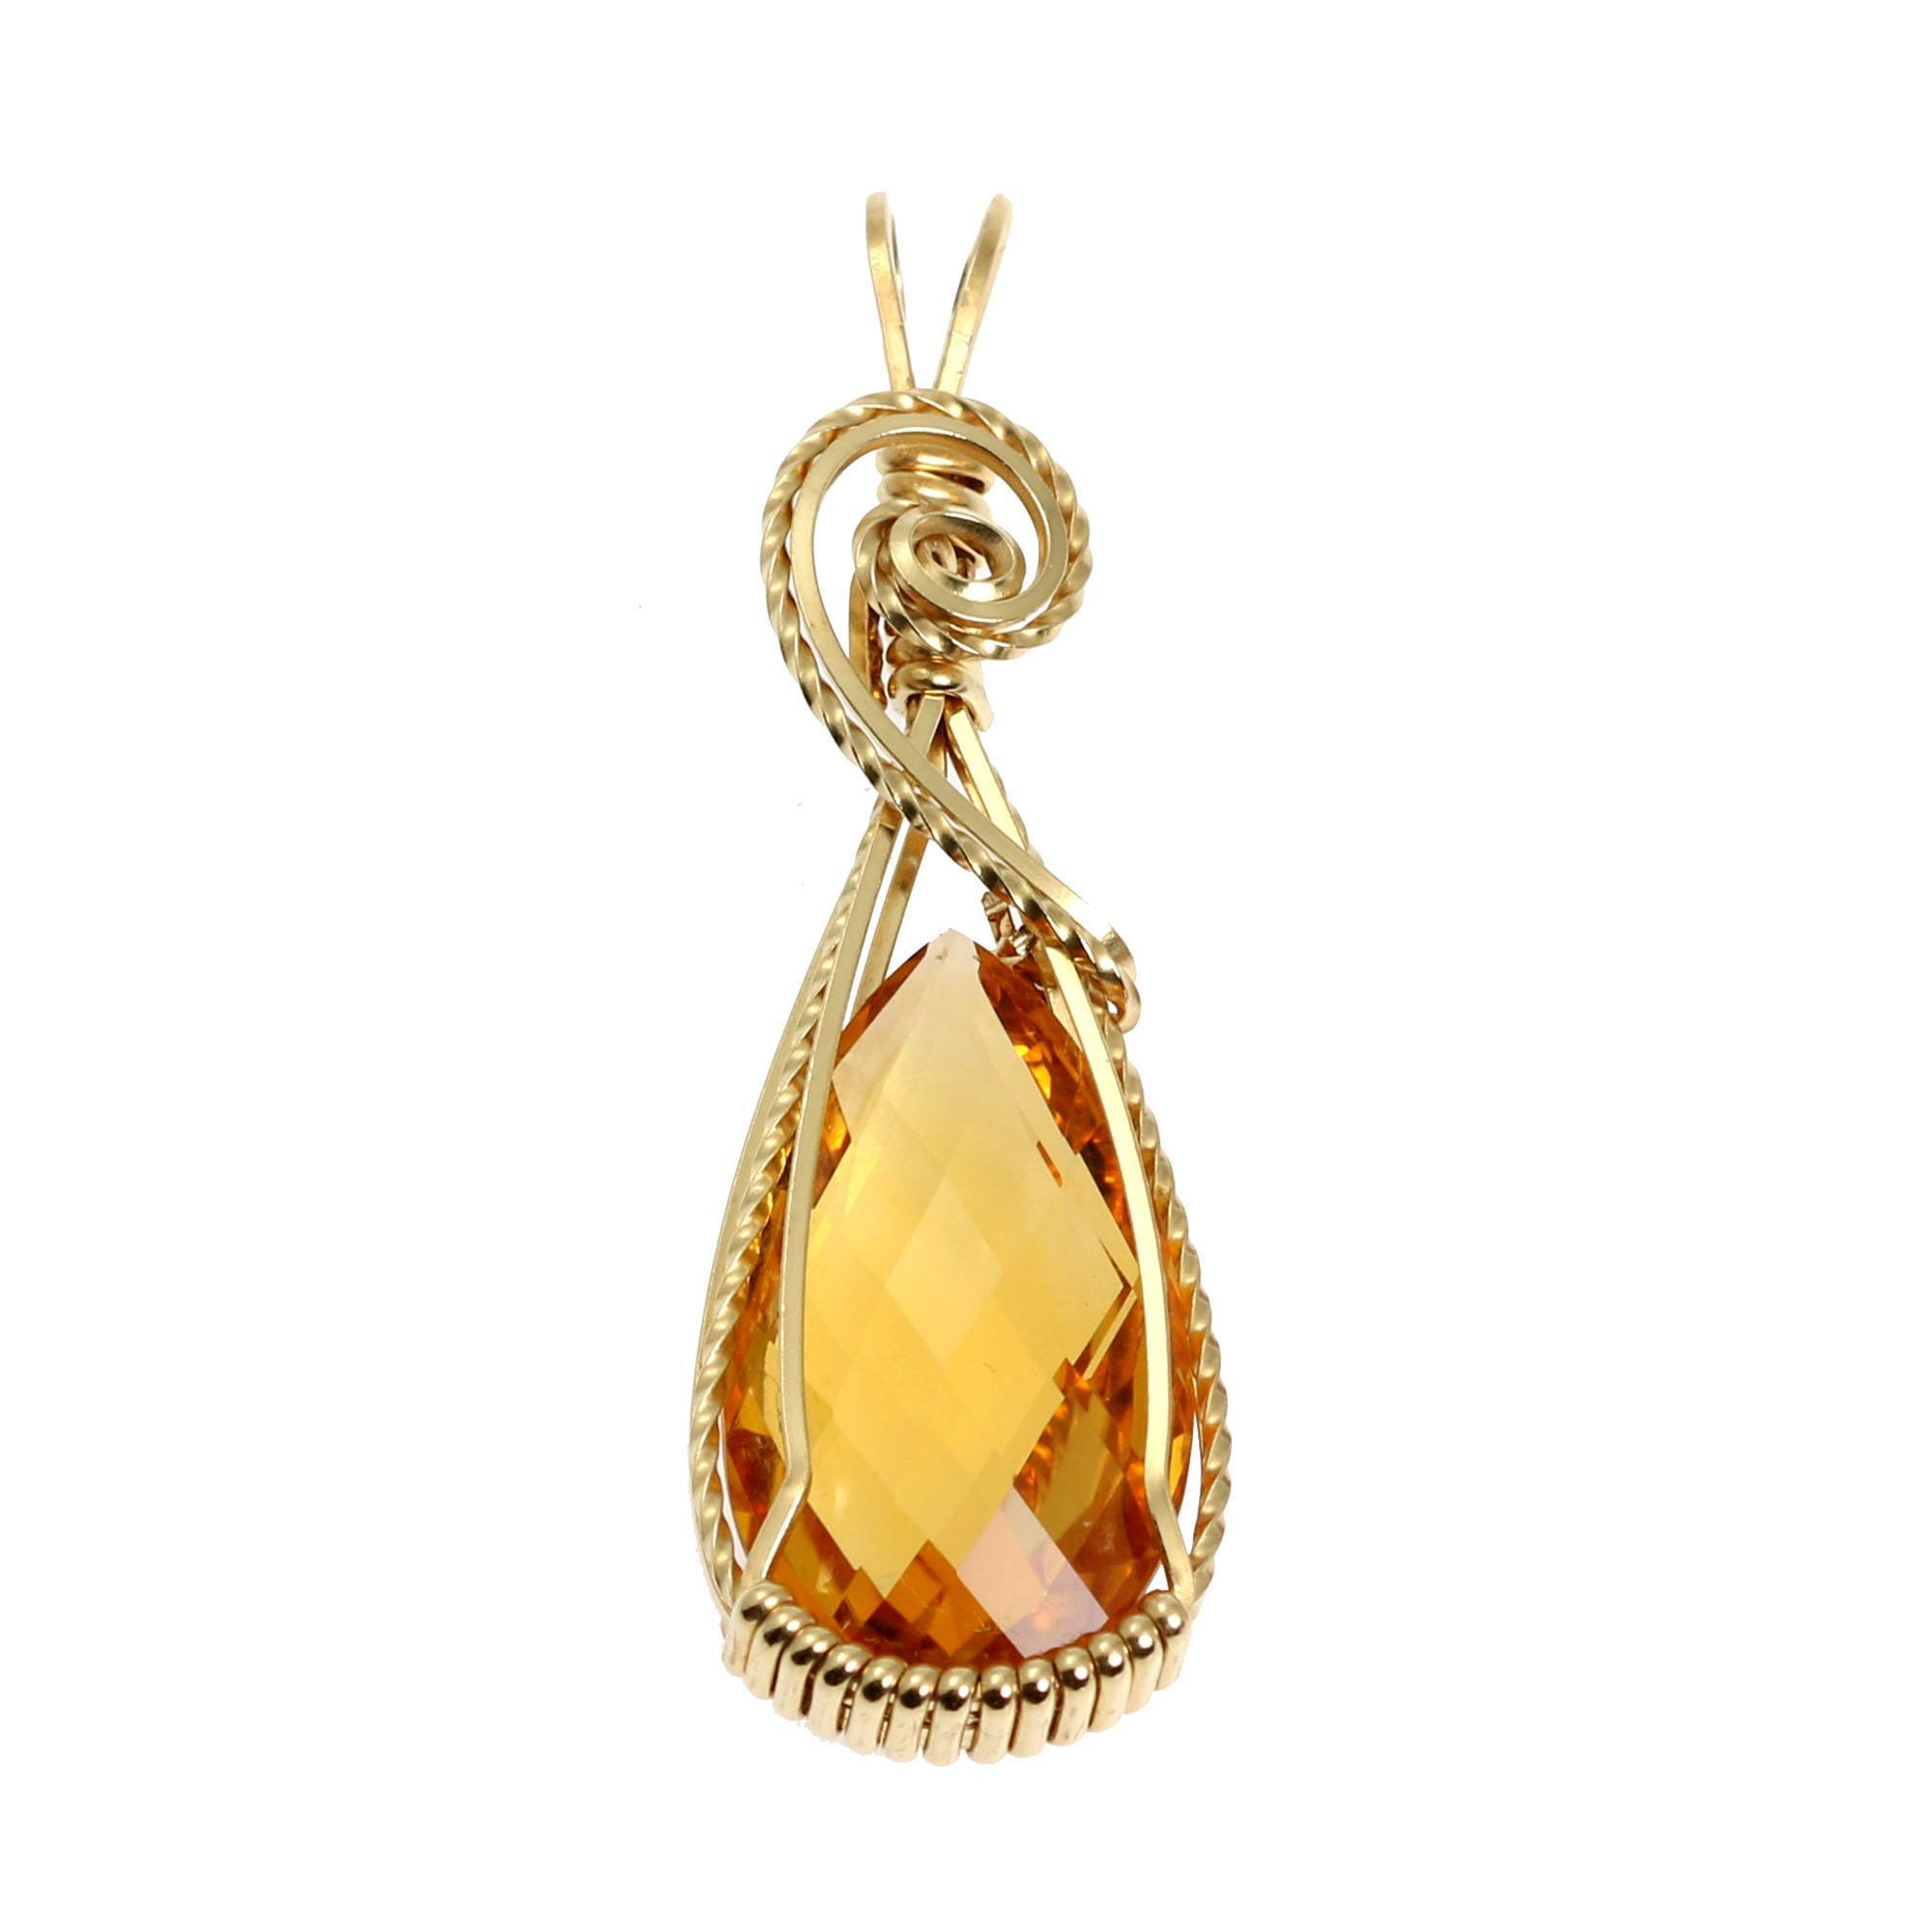 Handmade 14K gold filled wire crochet triangle pendant necklace with 14K gold filled chain SJC10489